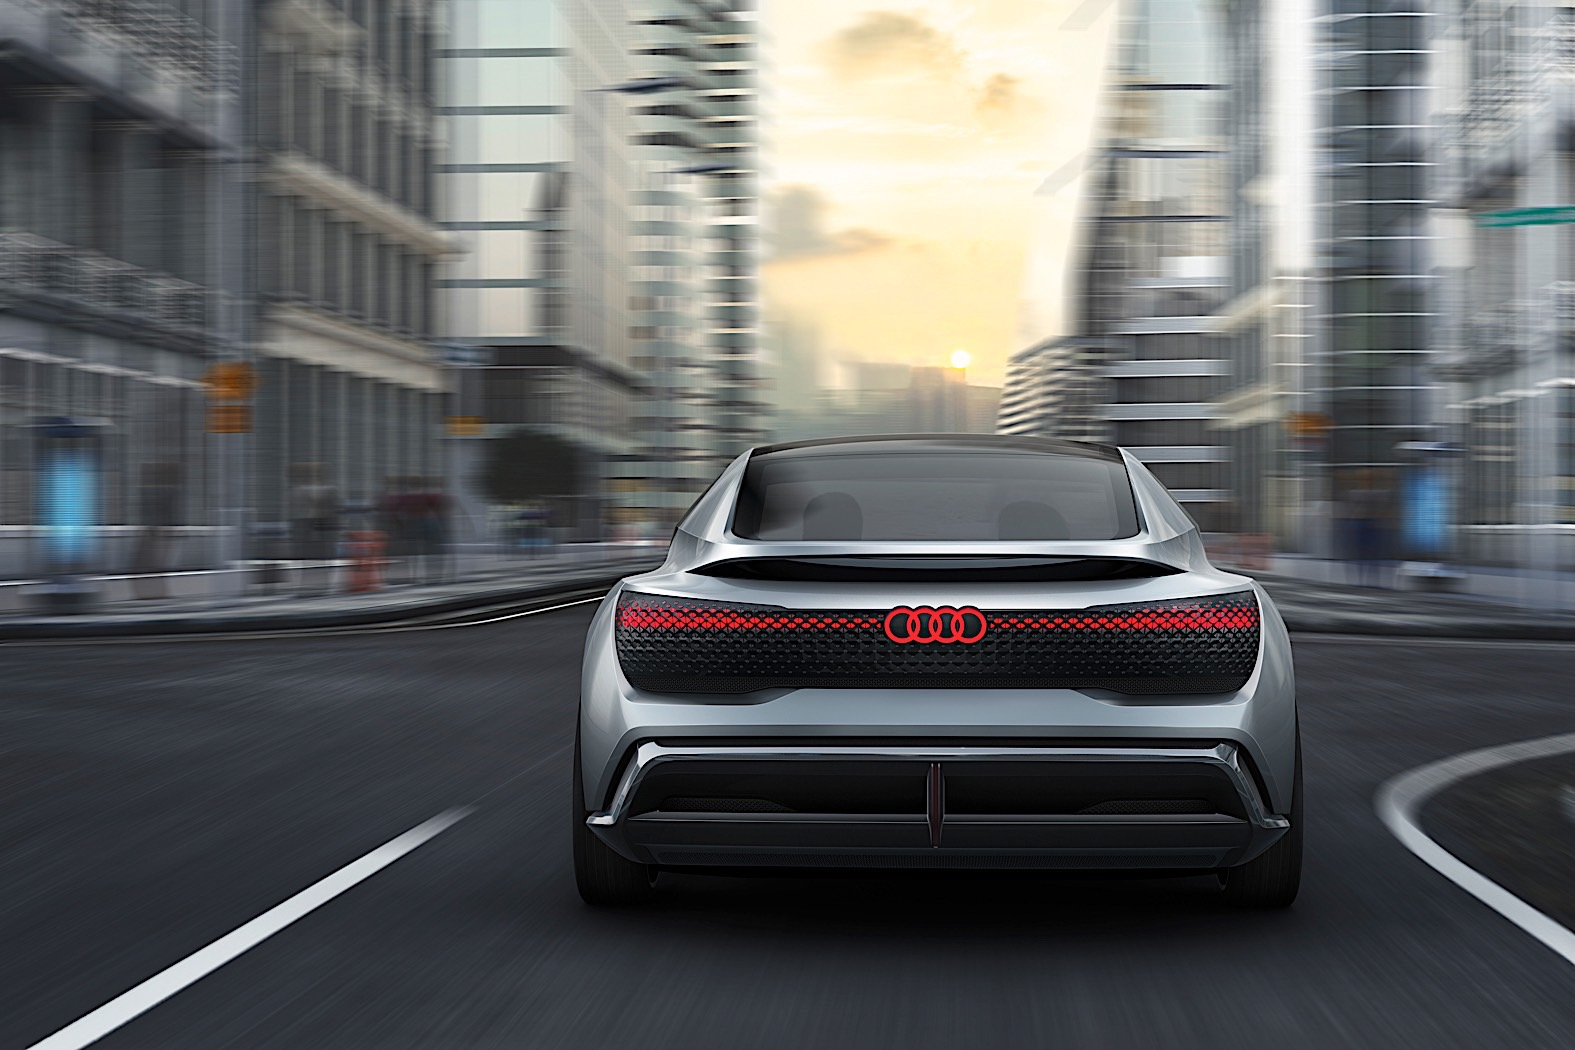 Audi e-tron SUV to launch in August 2018